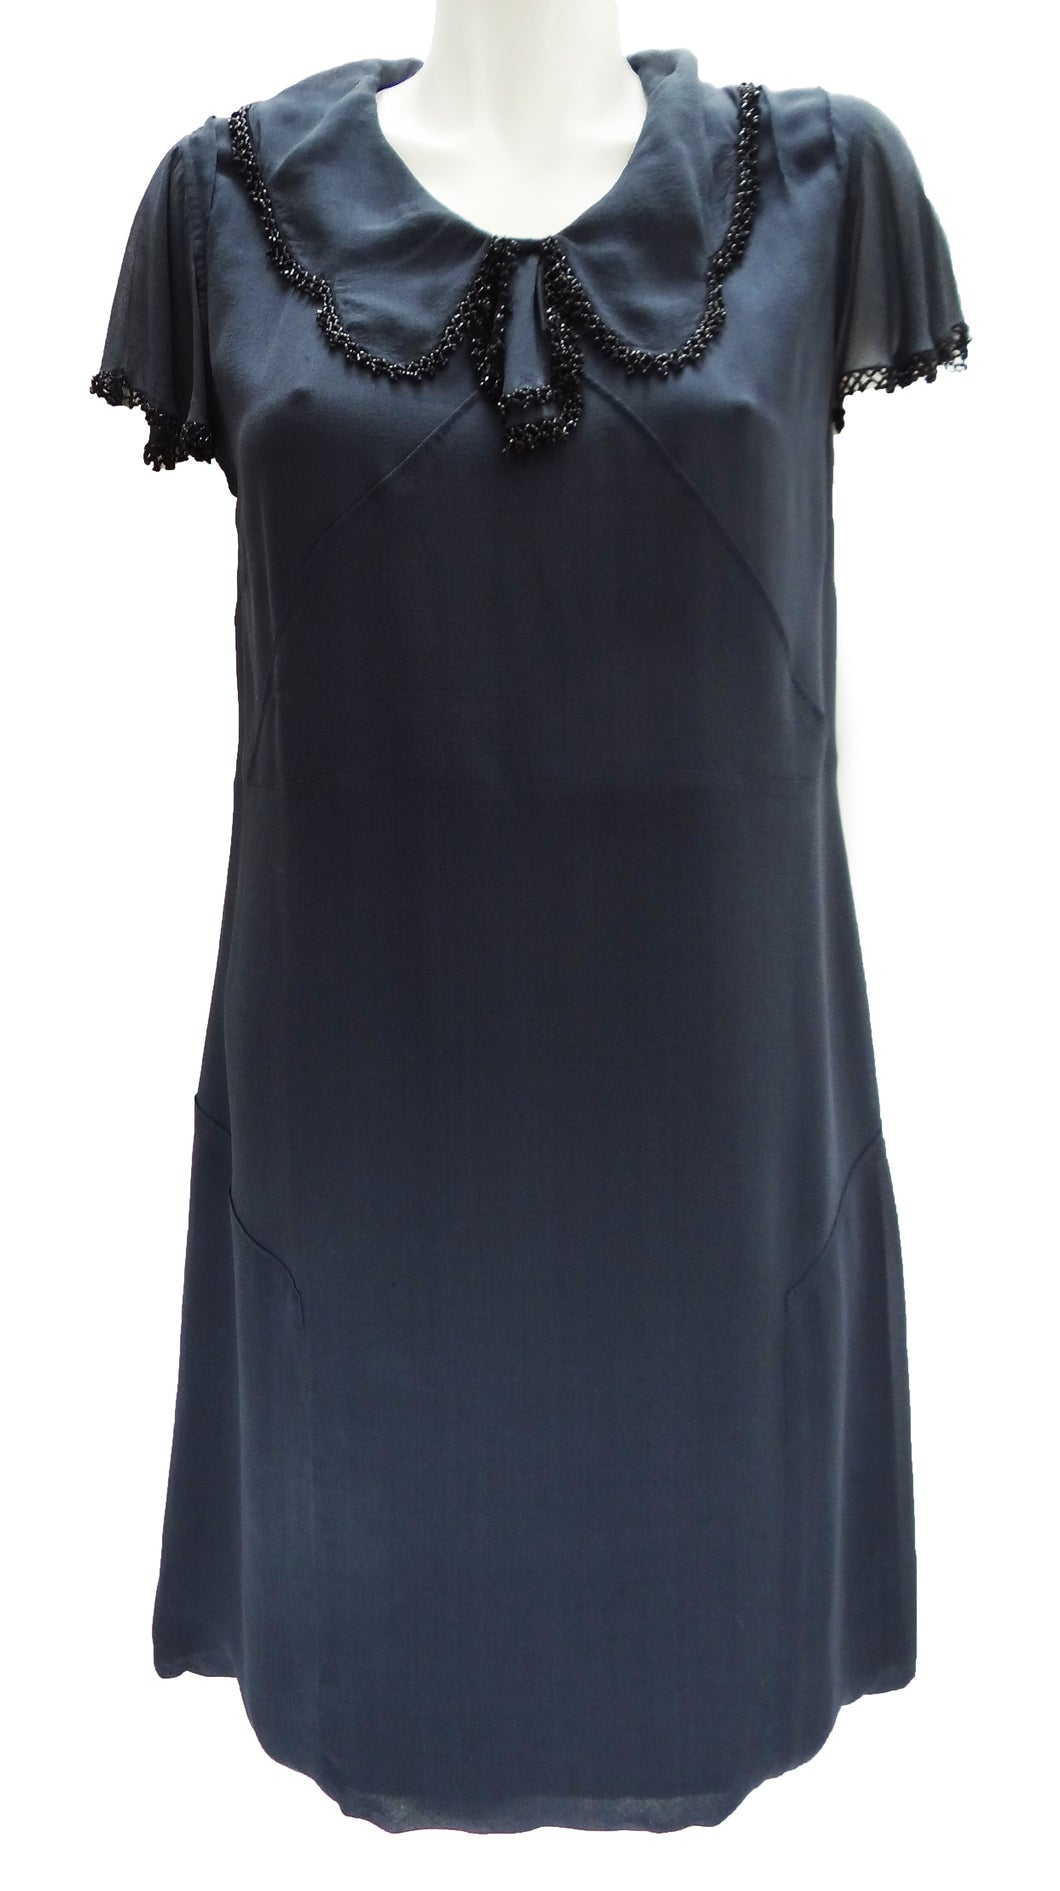 Nicole Farhi Charcoal Grey Silk Shift Dress with Beaded Trim UK12